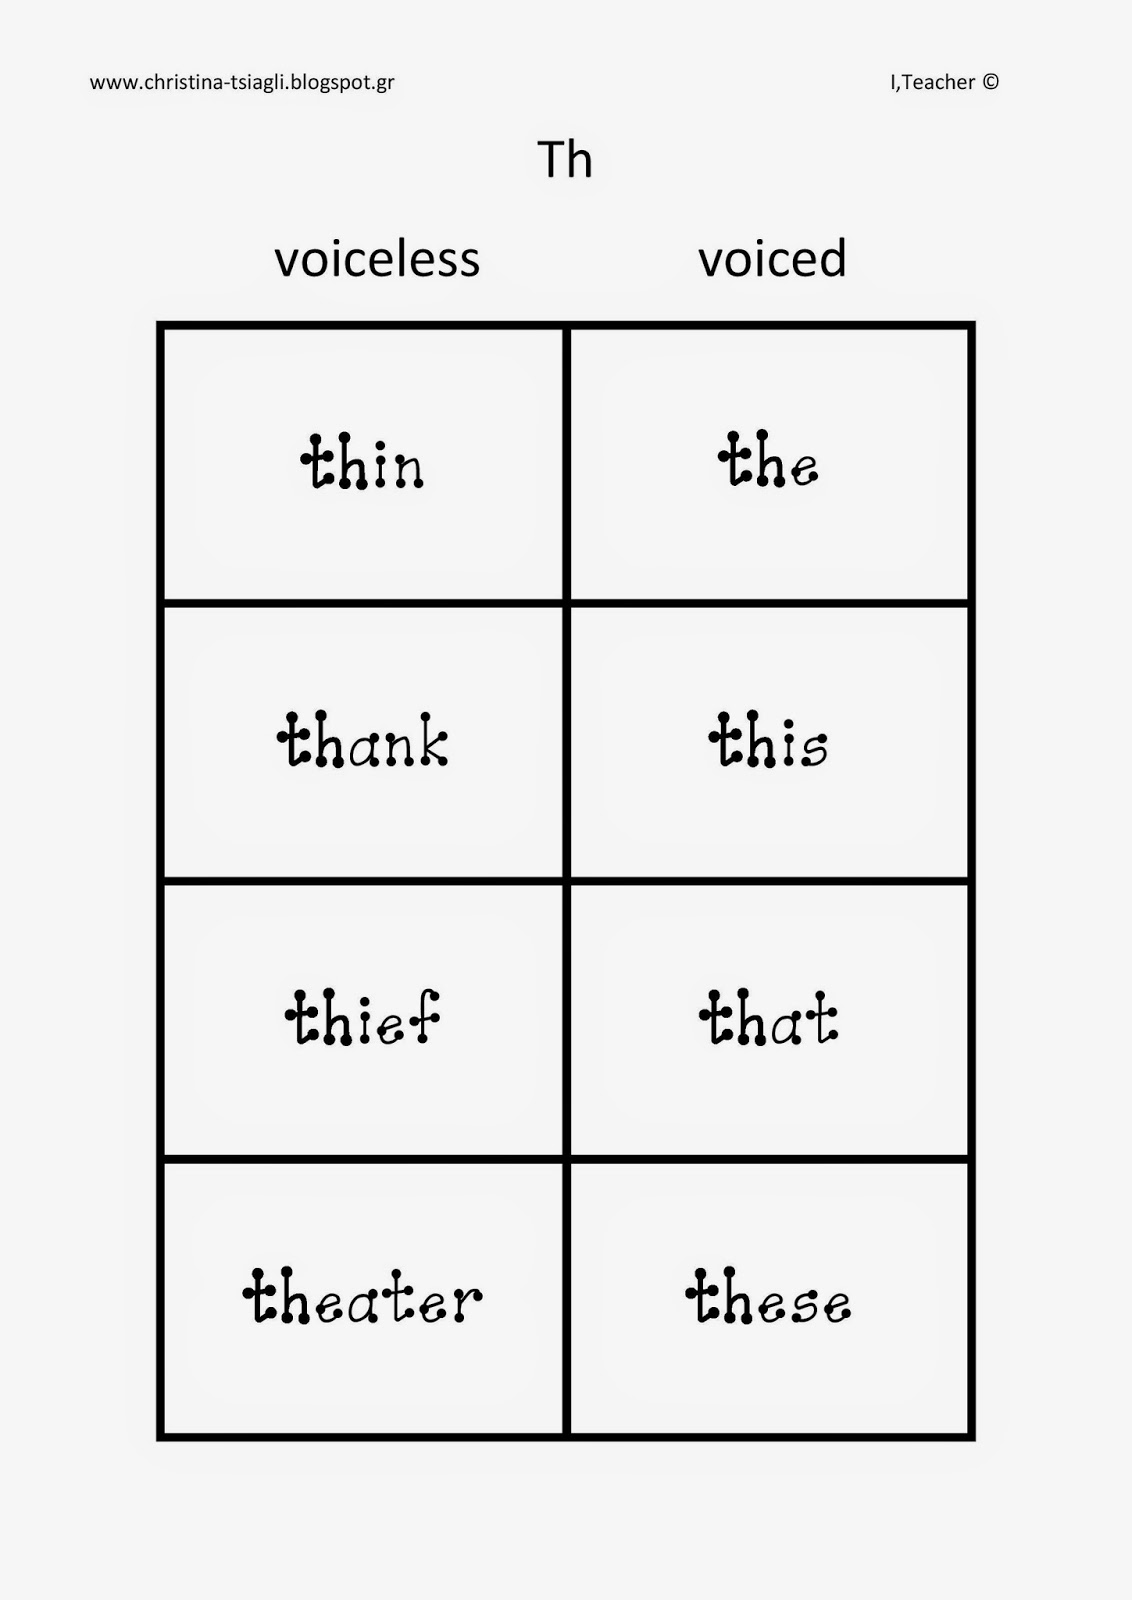 I Teacher Teaching Digraphs Th Voiced And Voiceless